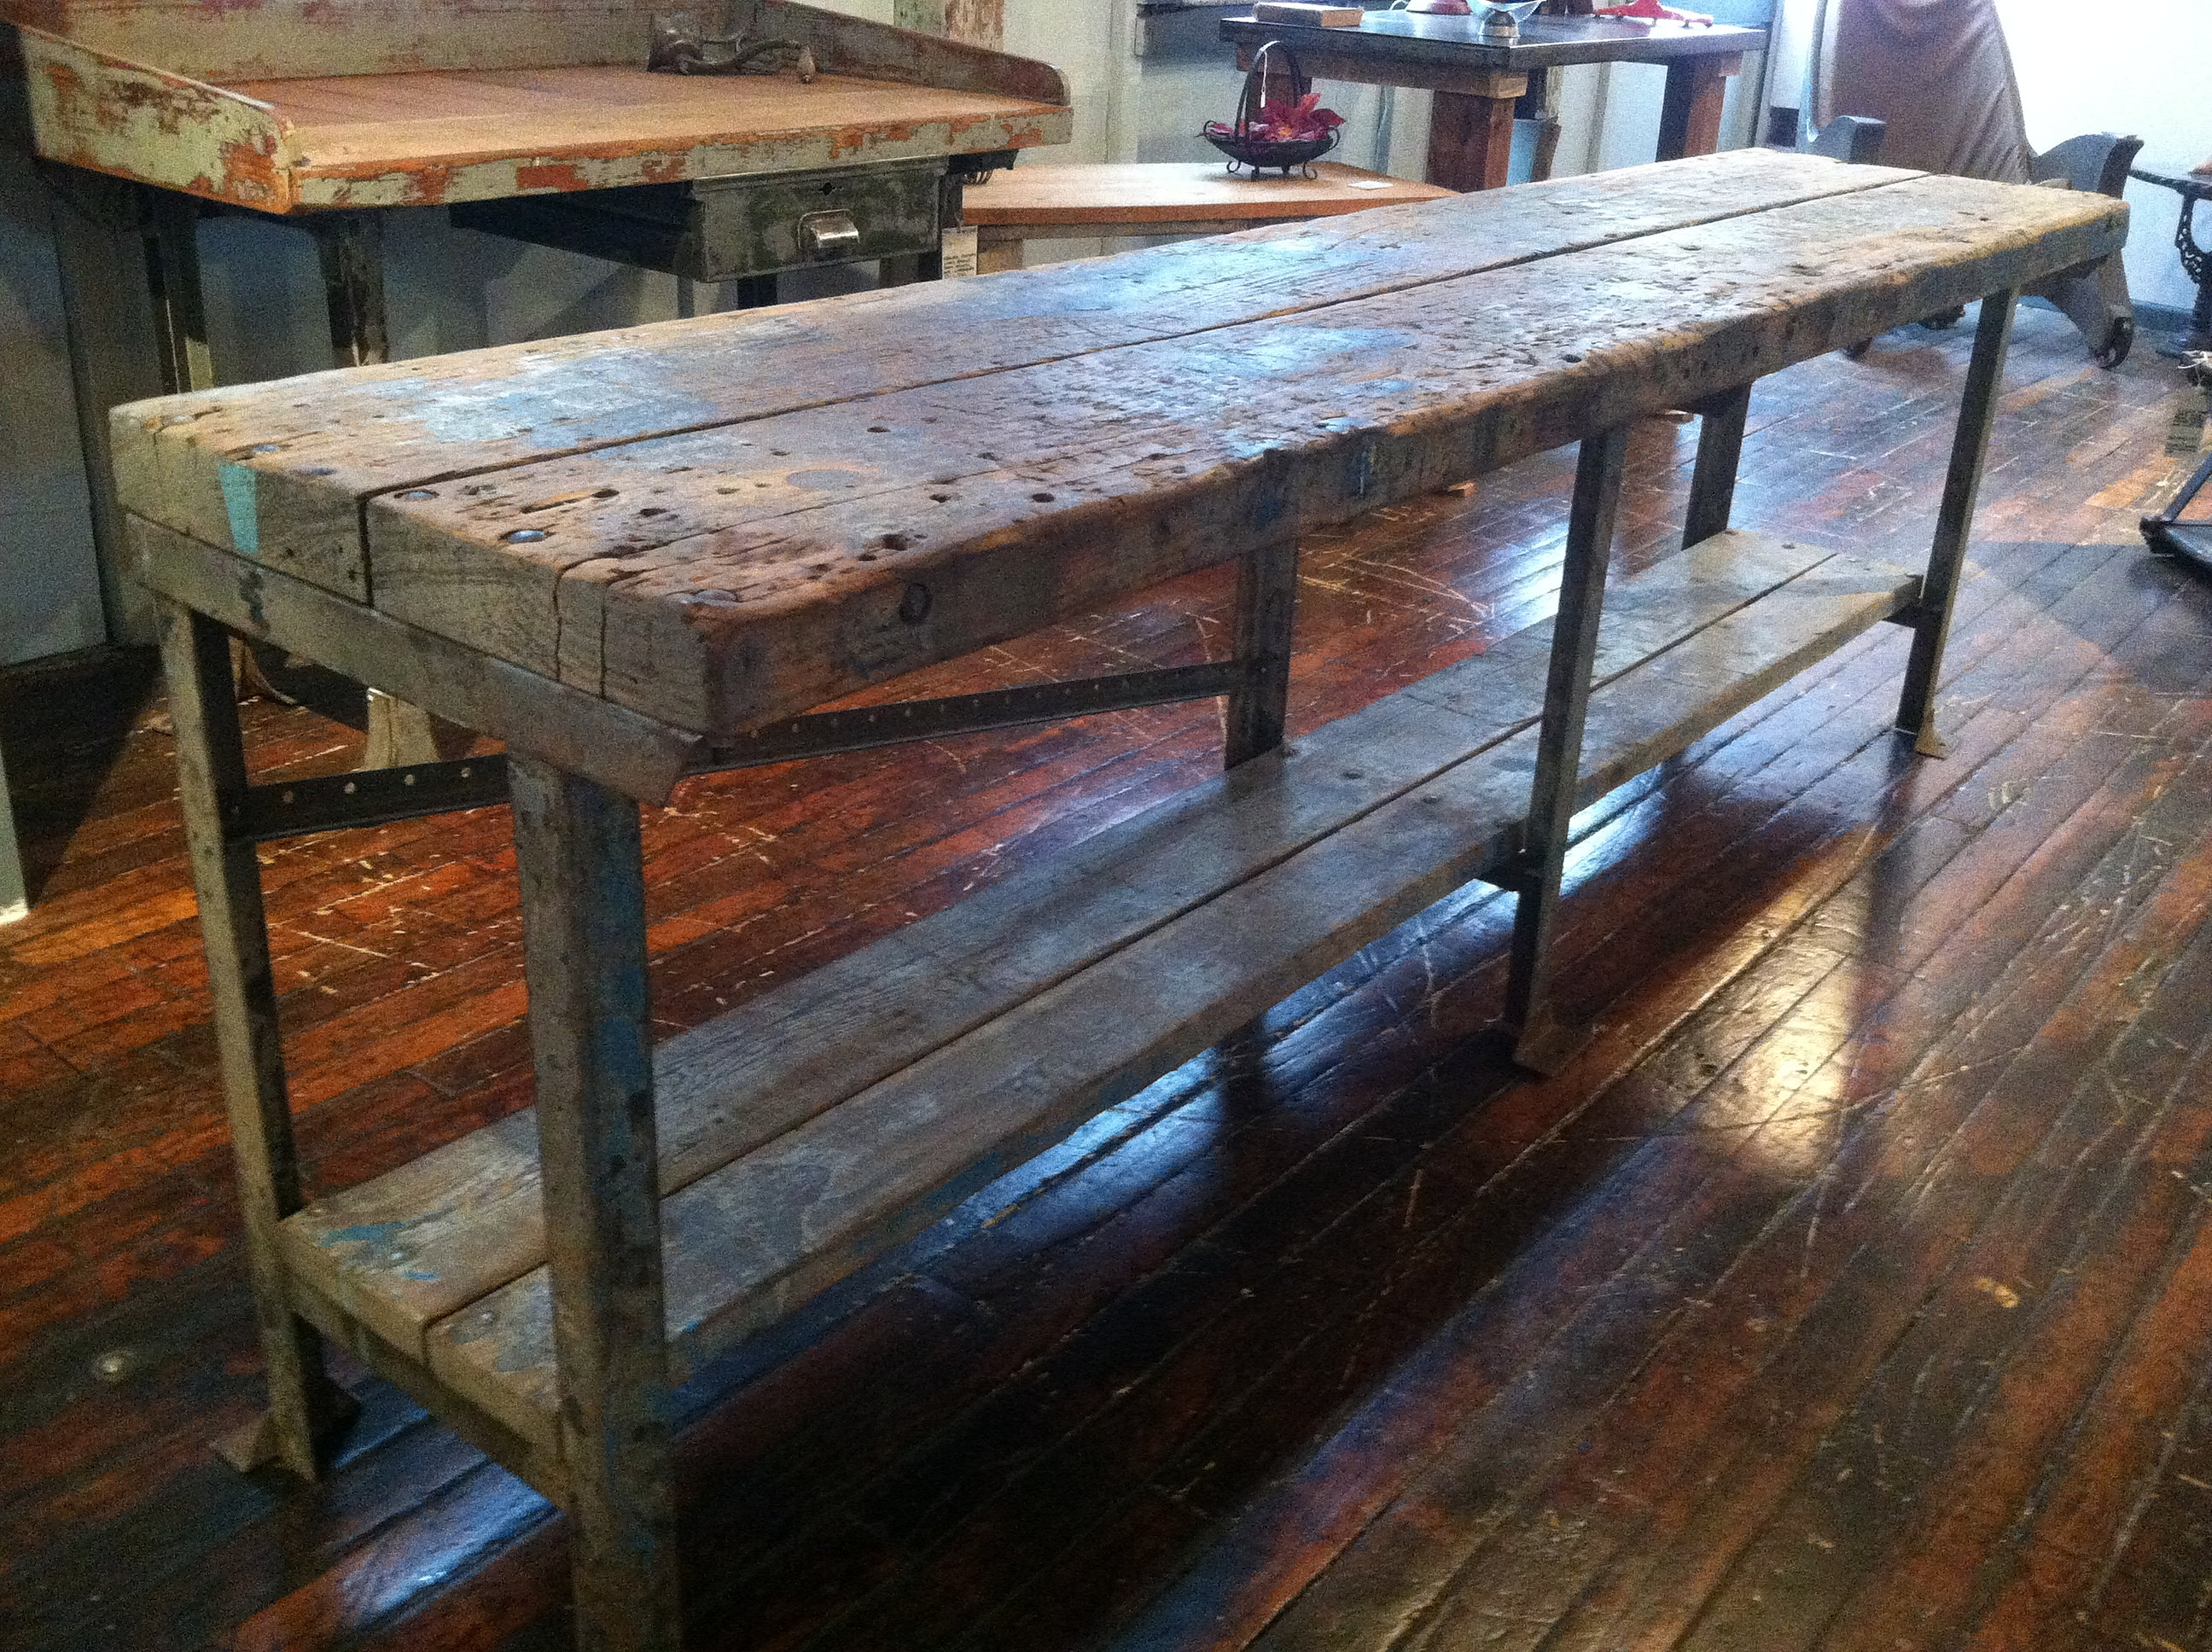 Reworx Collective Furniture Maker | Rescued work bench